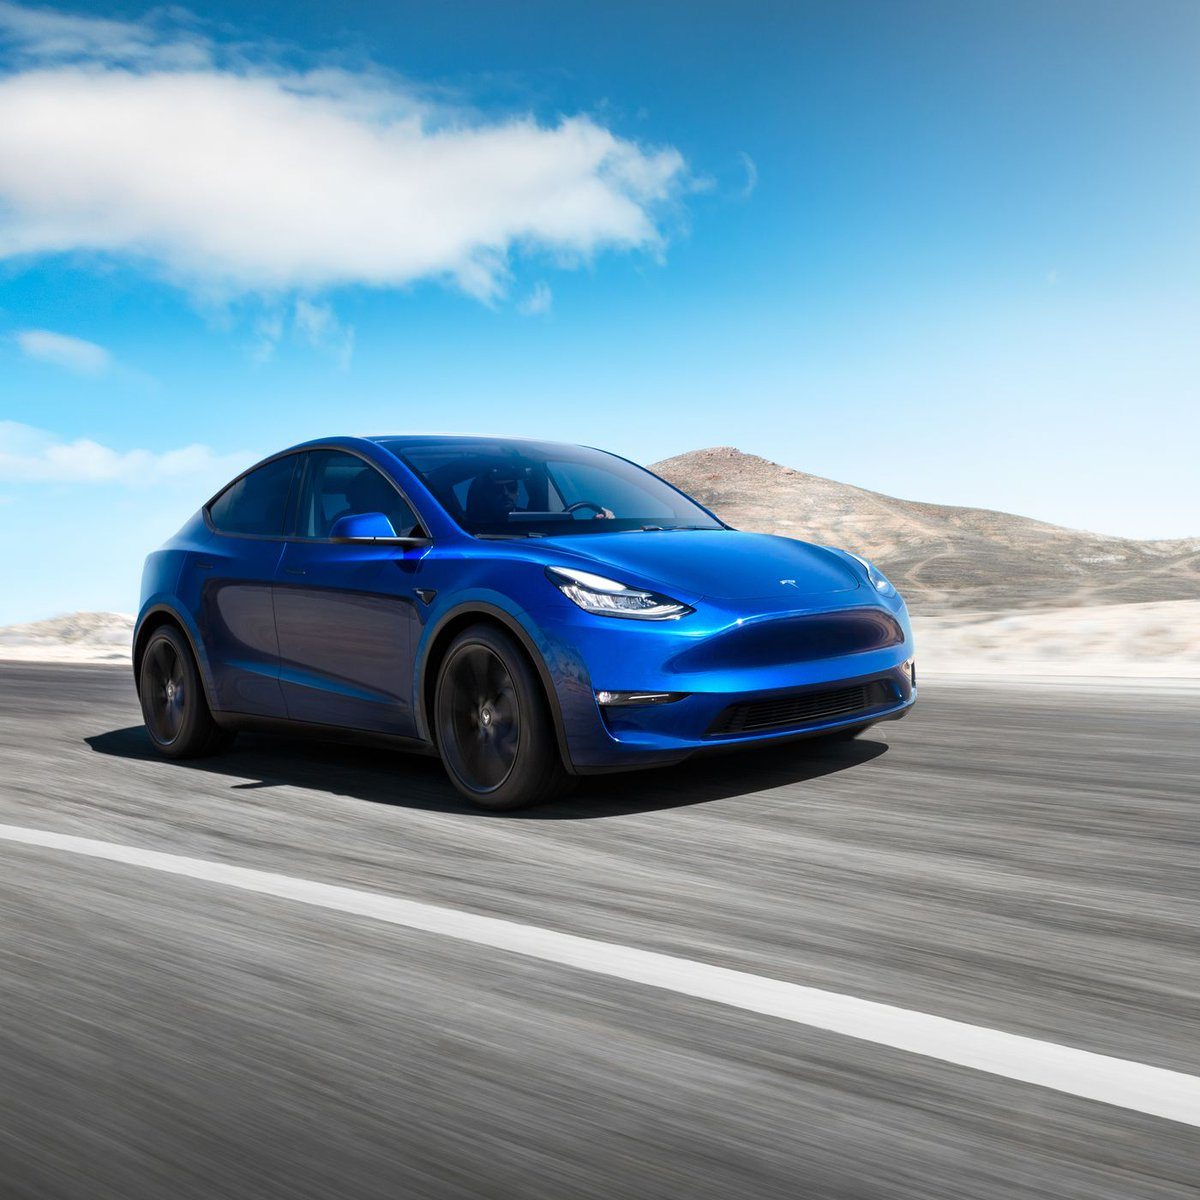 Beth Lily's photo on Tesla Model Y